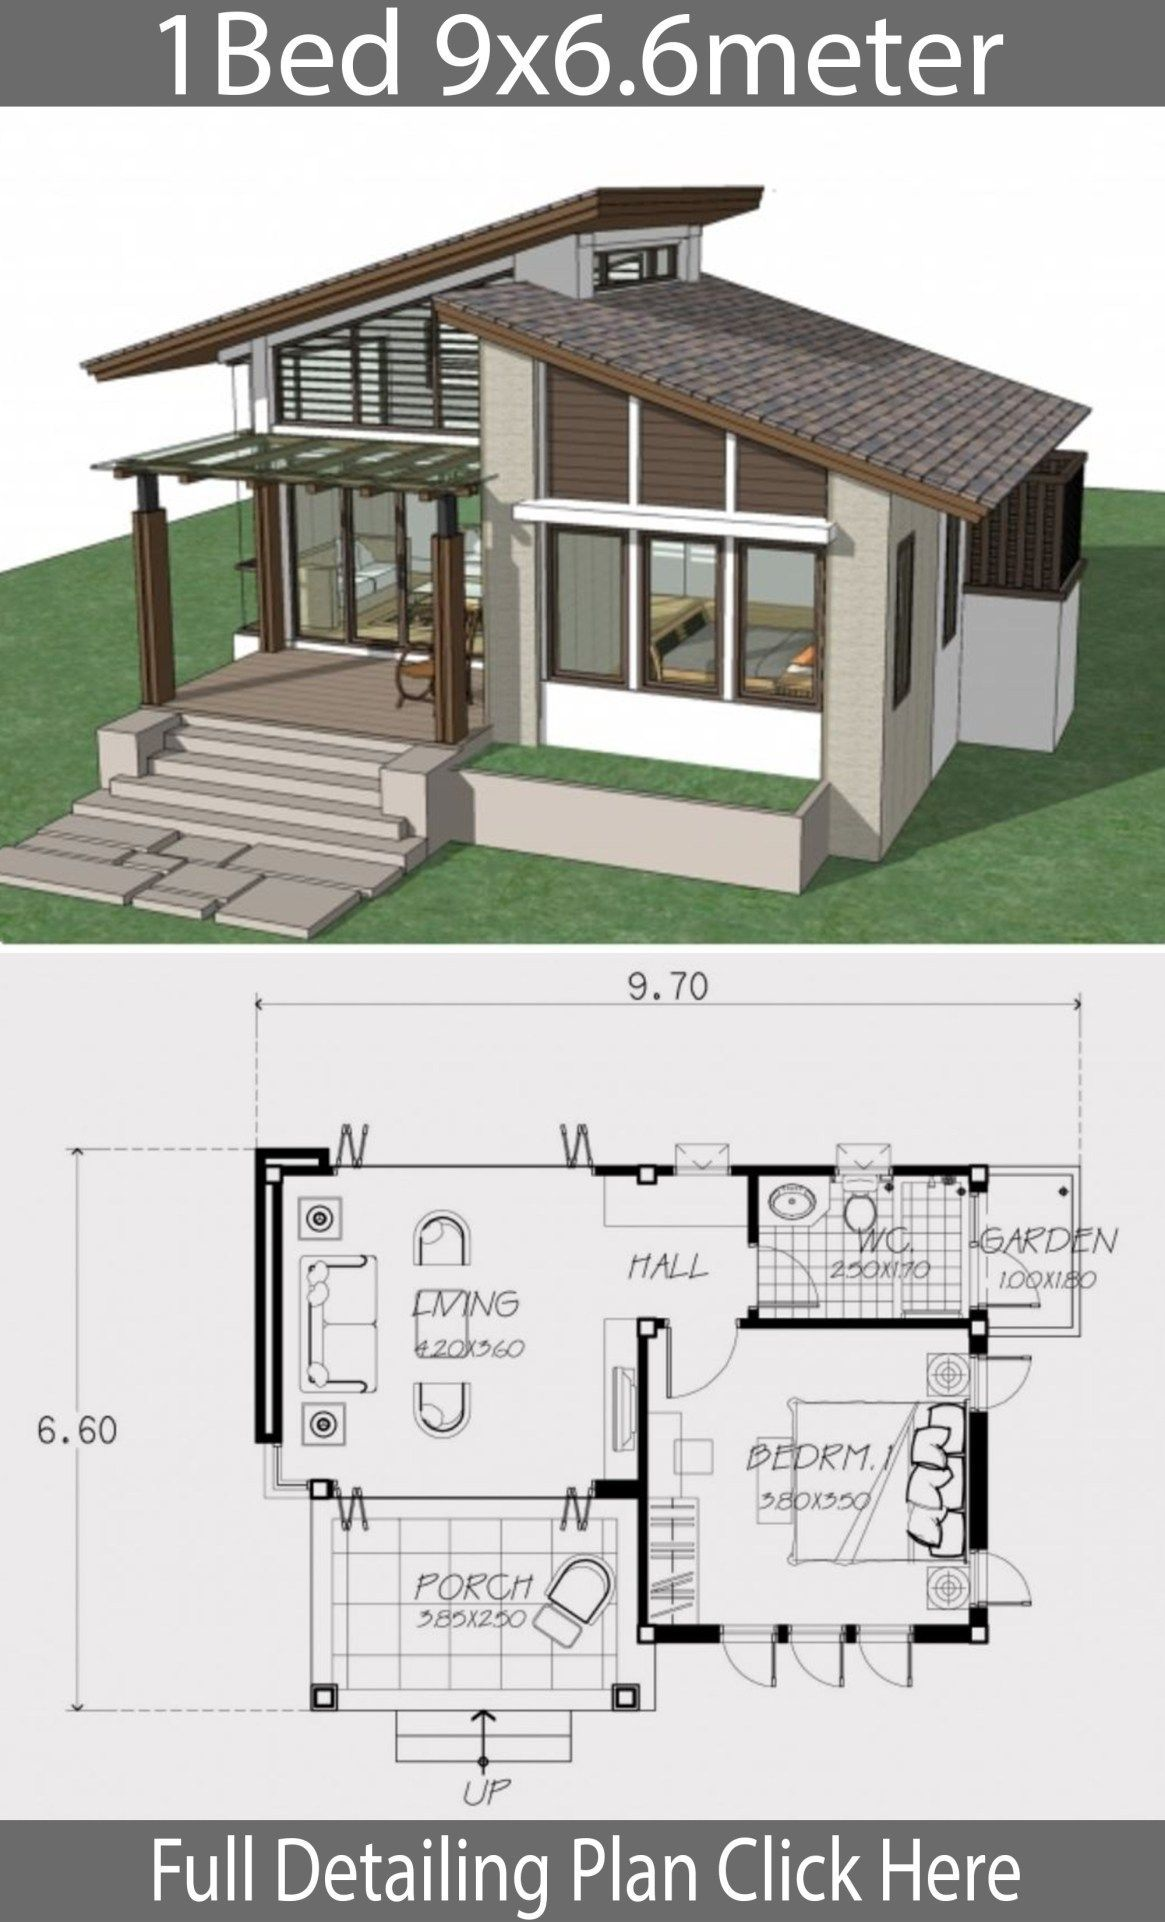 Small Home Design Plan 9x6 6m With One Bedroom Home Ideas Small Home Design Plan 9 6 6m With One Small House Style One Bedroom House Modern Bungalow House